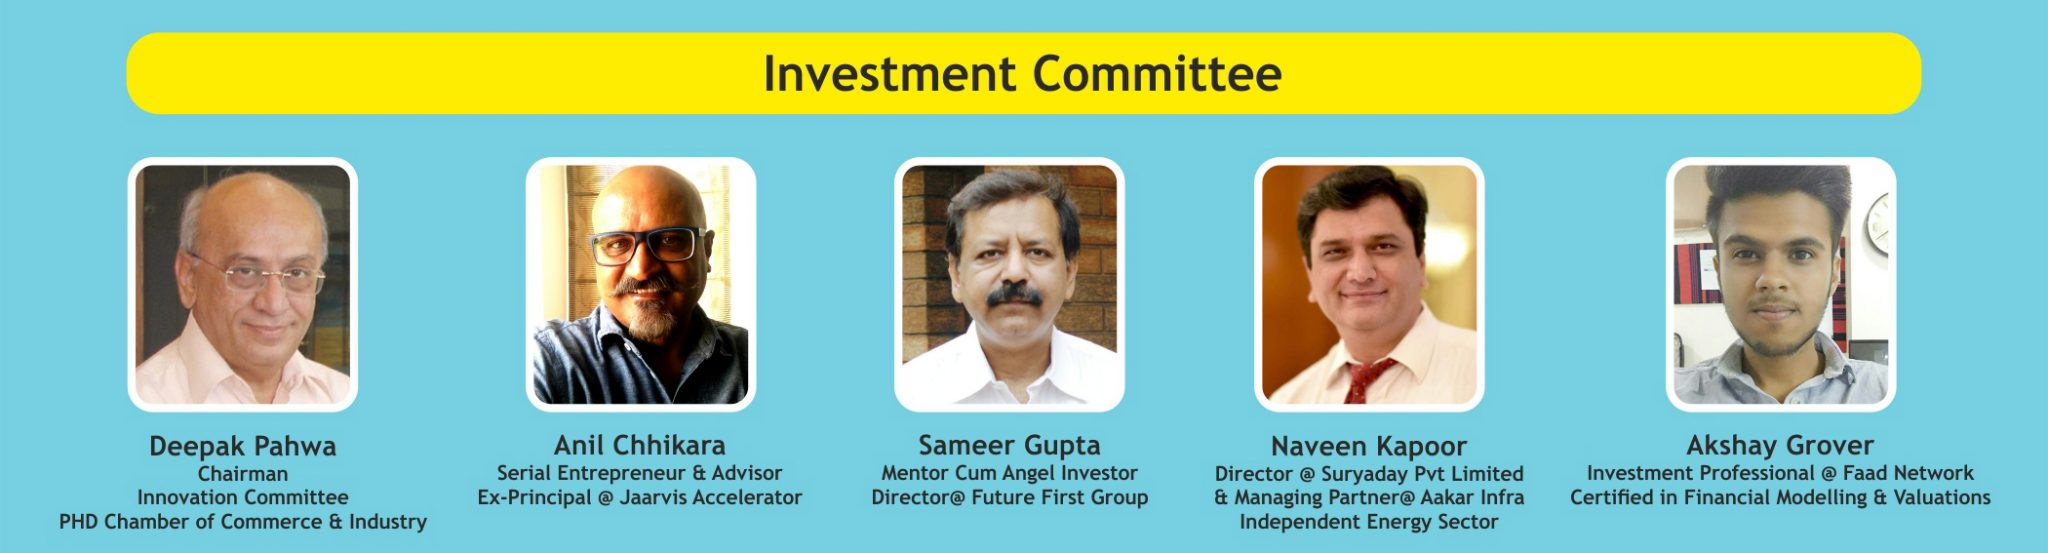 investment-committee